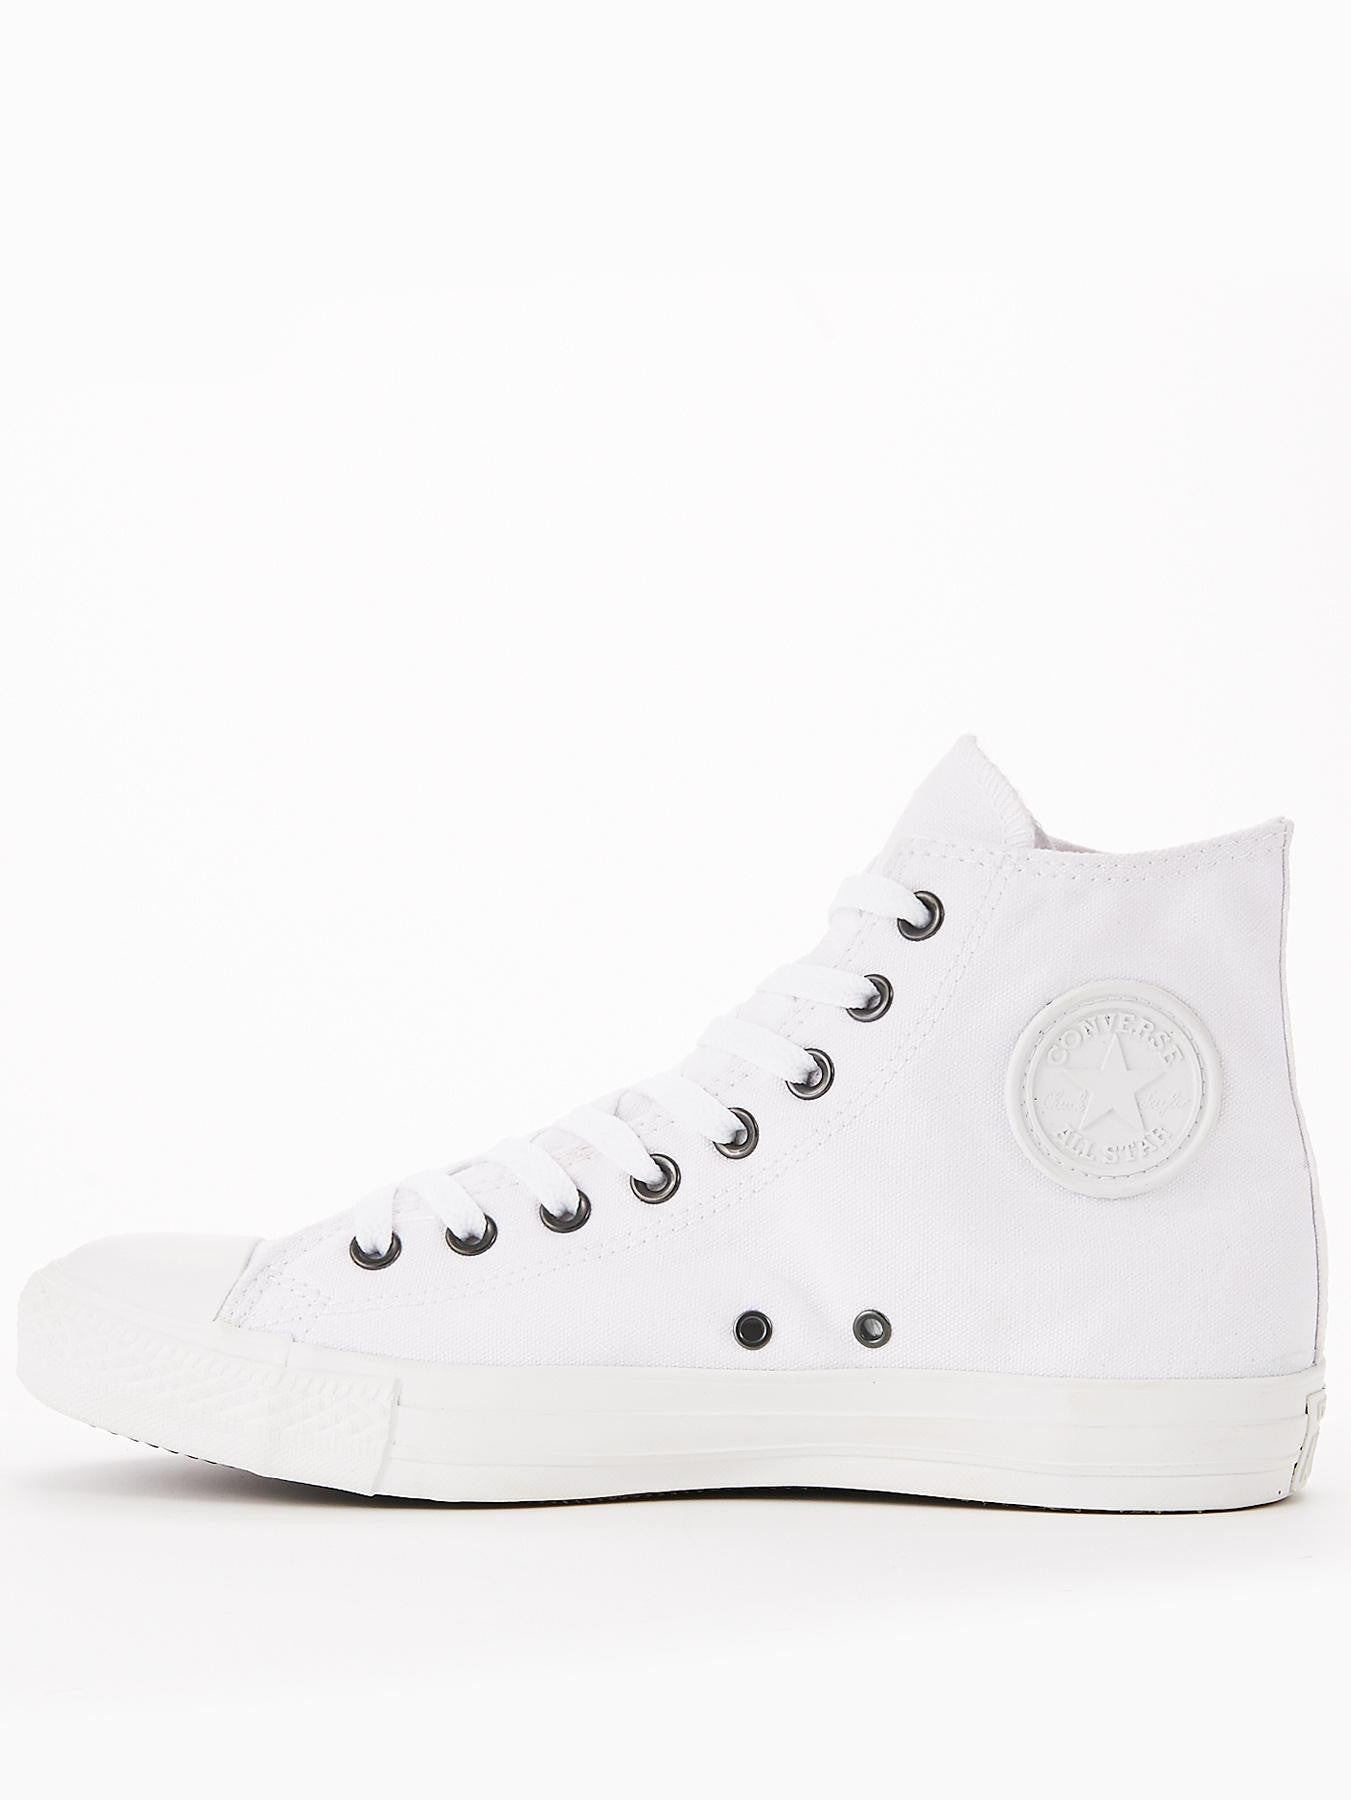 af437e2391e9 Converse Chuck Taylor All Stars White Monochrome Hi with silver eyelets